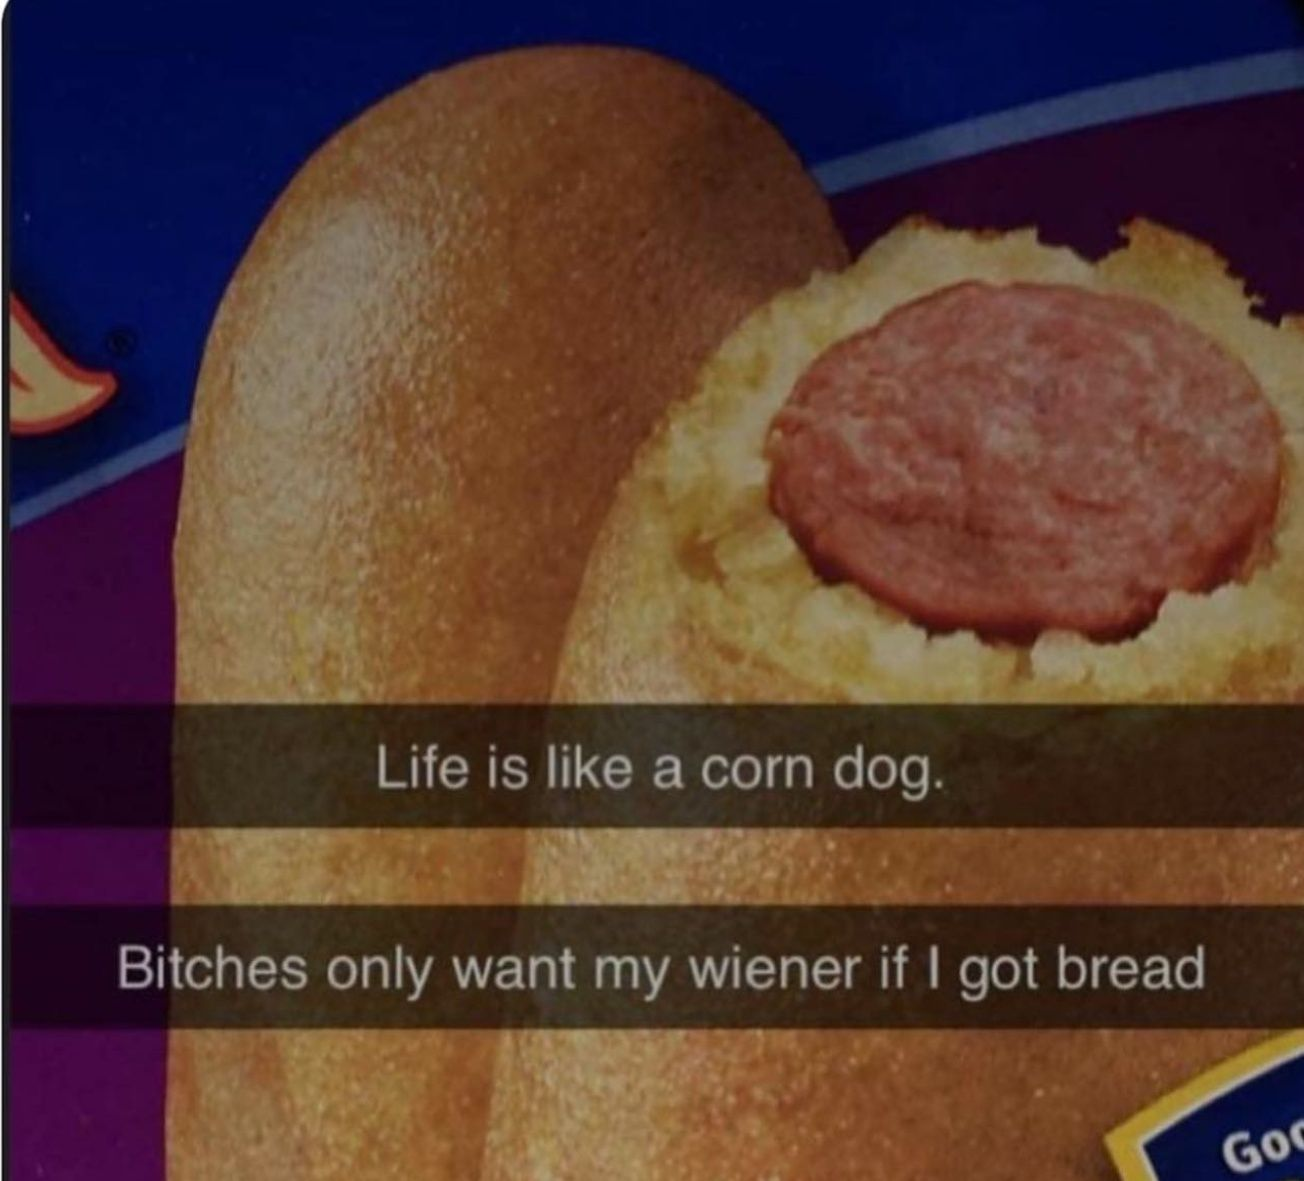 Keep your bread and weiners safe my friends